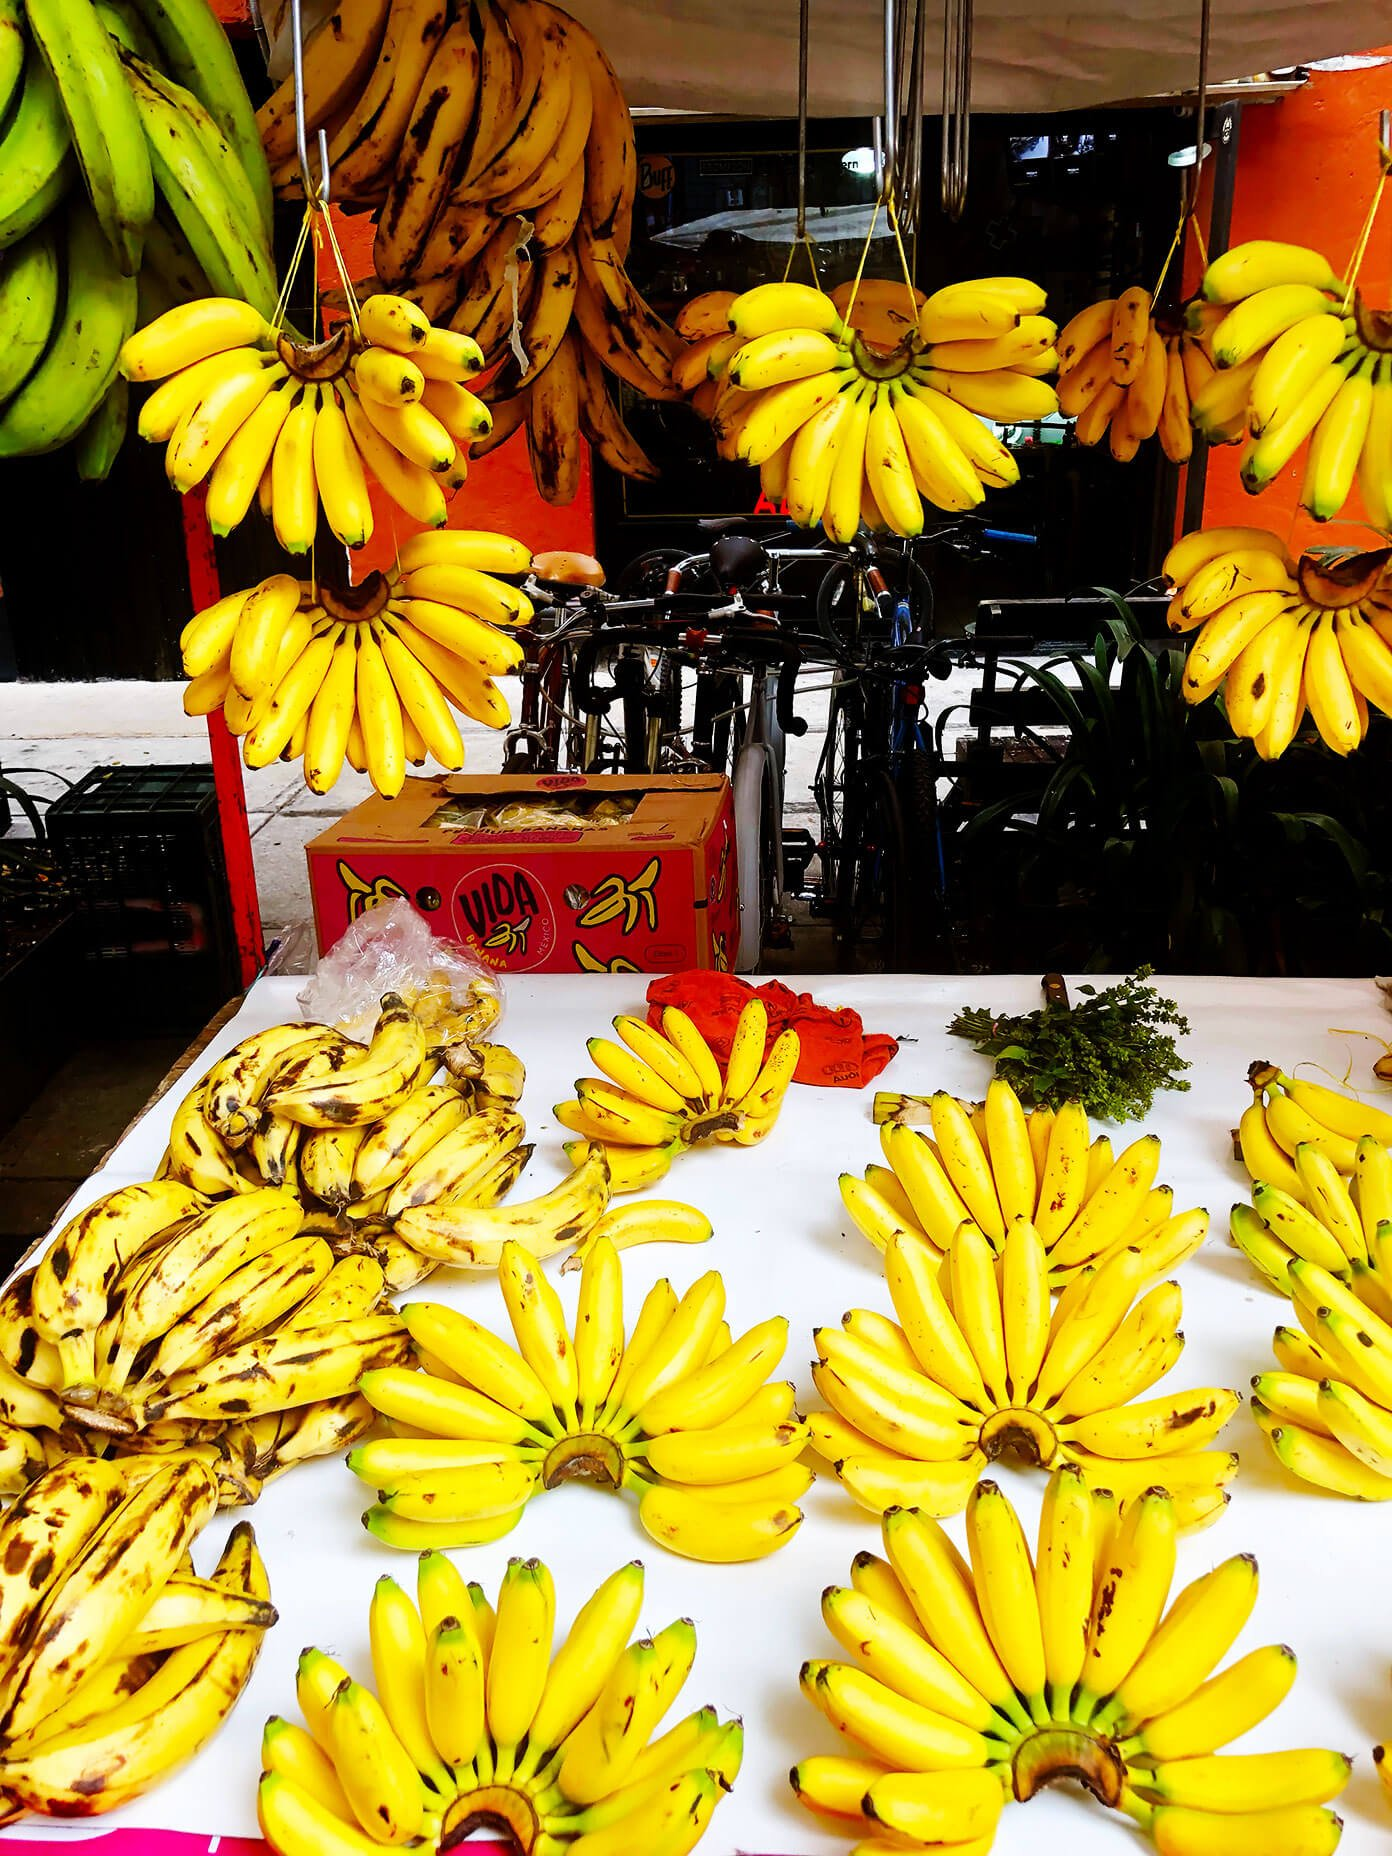 Mexico City Market Bananas